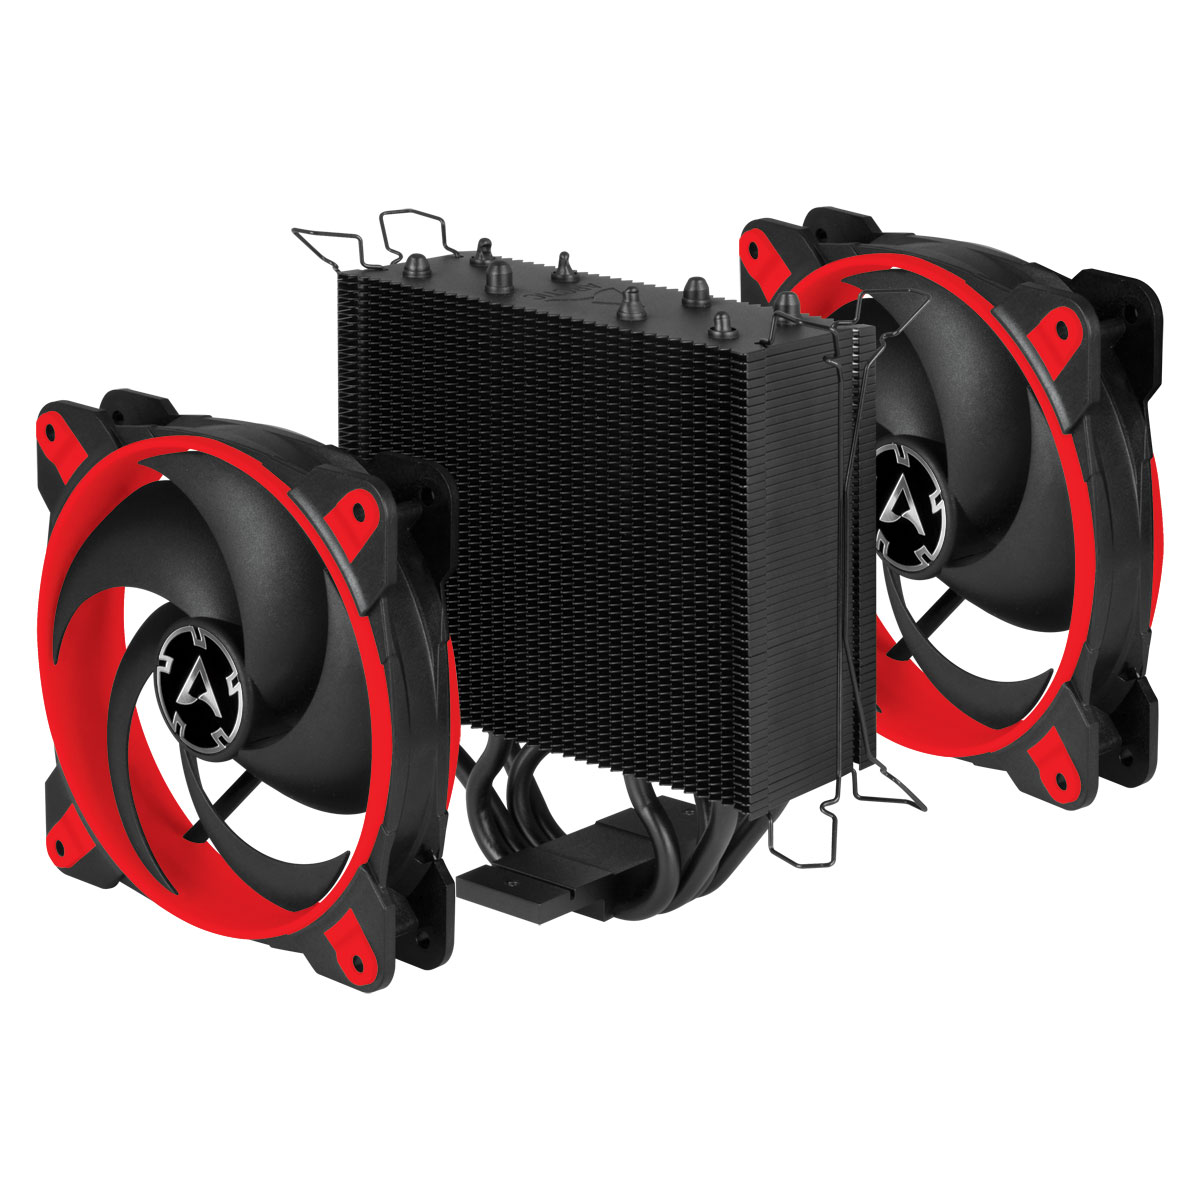 Tower CPU Cooler with Push-Pull Configuration ARCTIC Freezer 34 eSports DUO (Red) Fans and Cooling Unit Separated